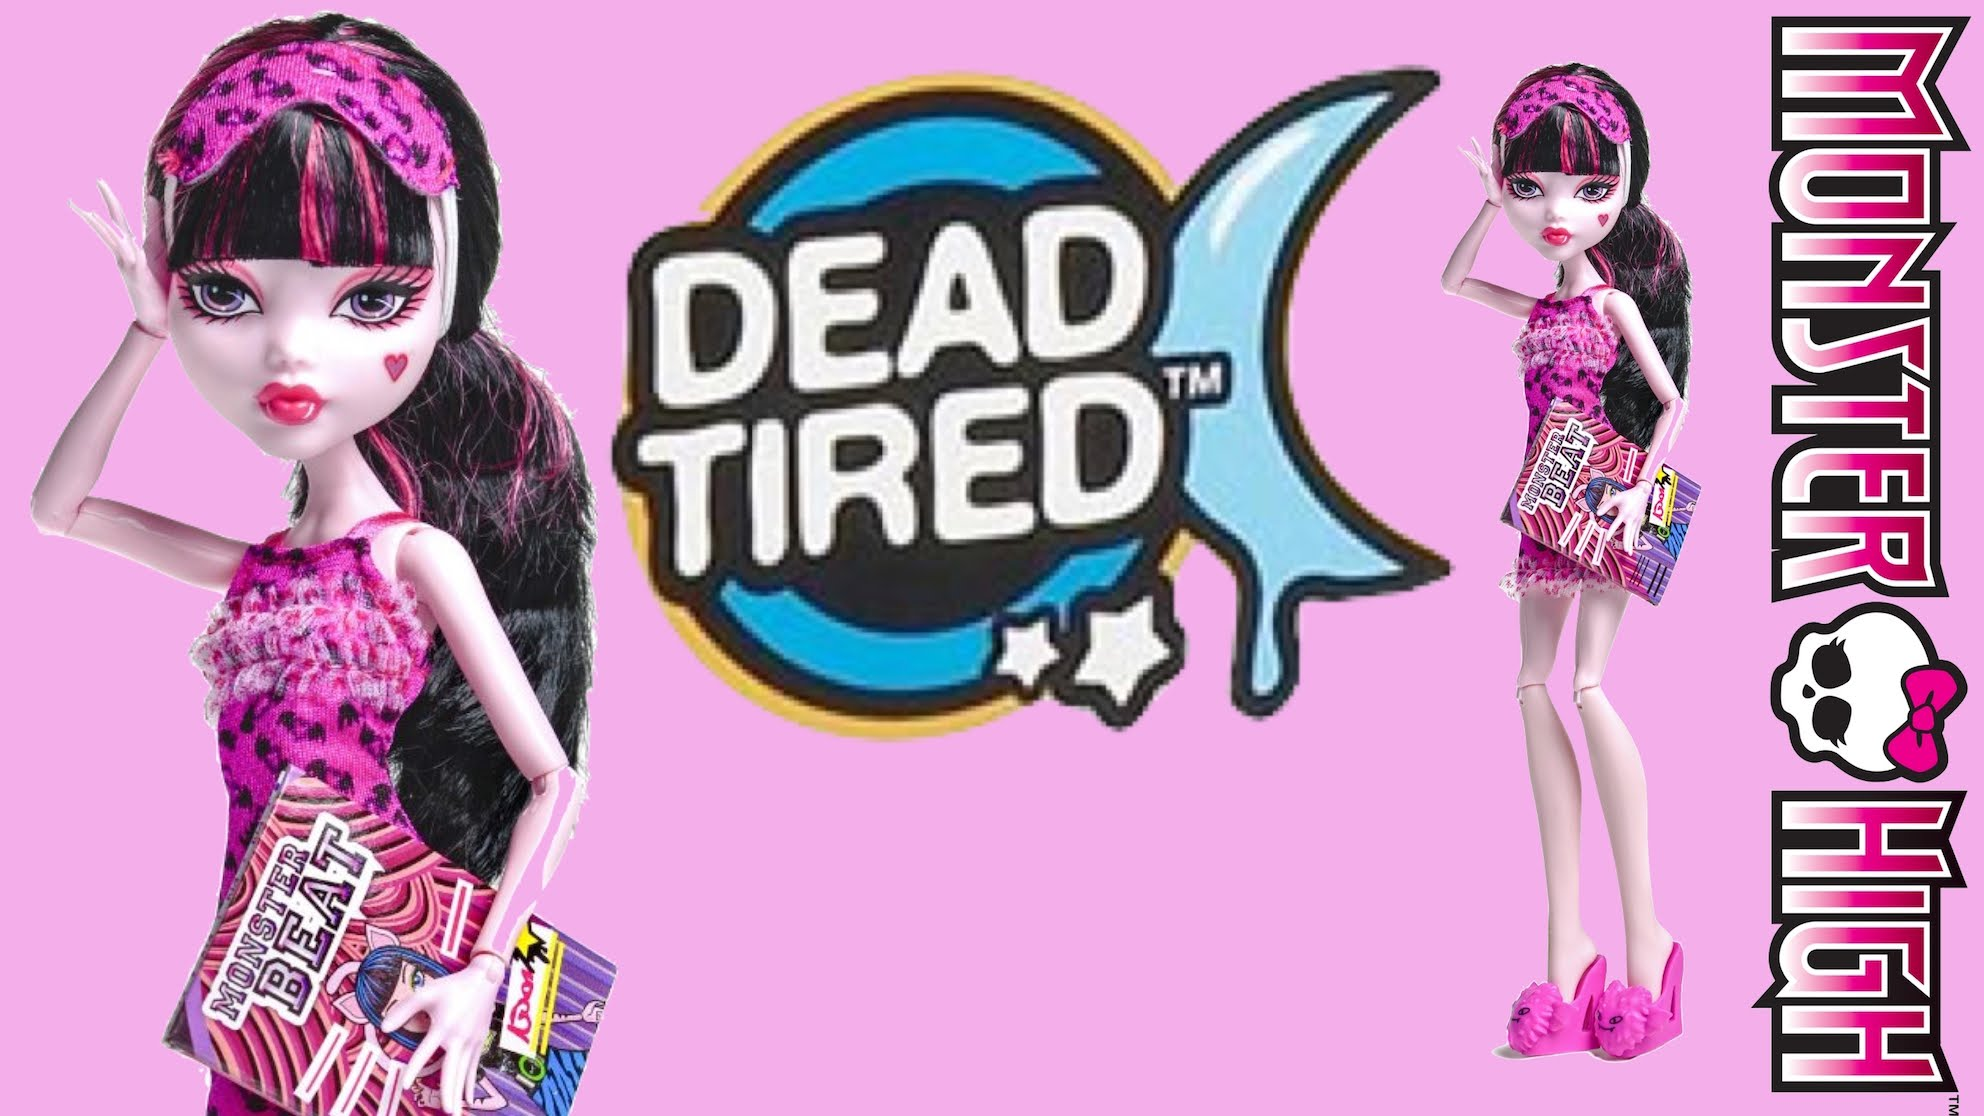 Dead Tired Draculaura Monster High Review - YouTube